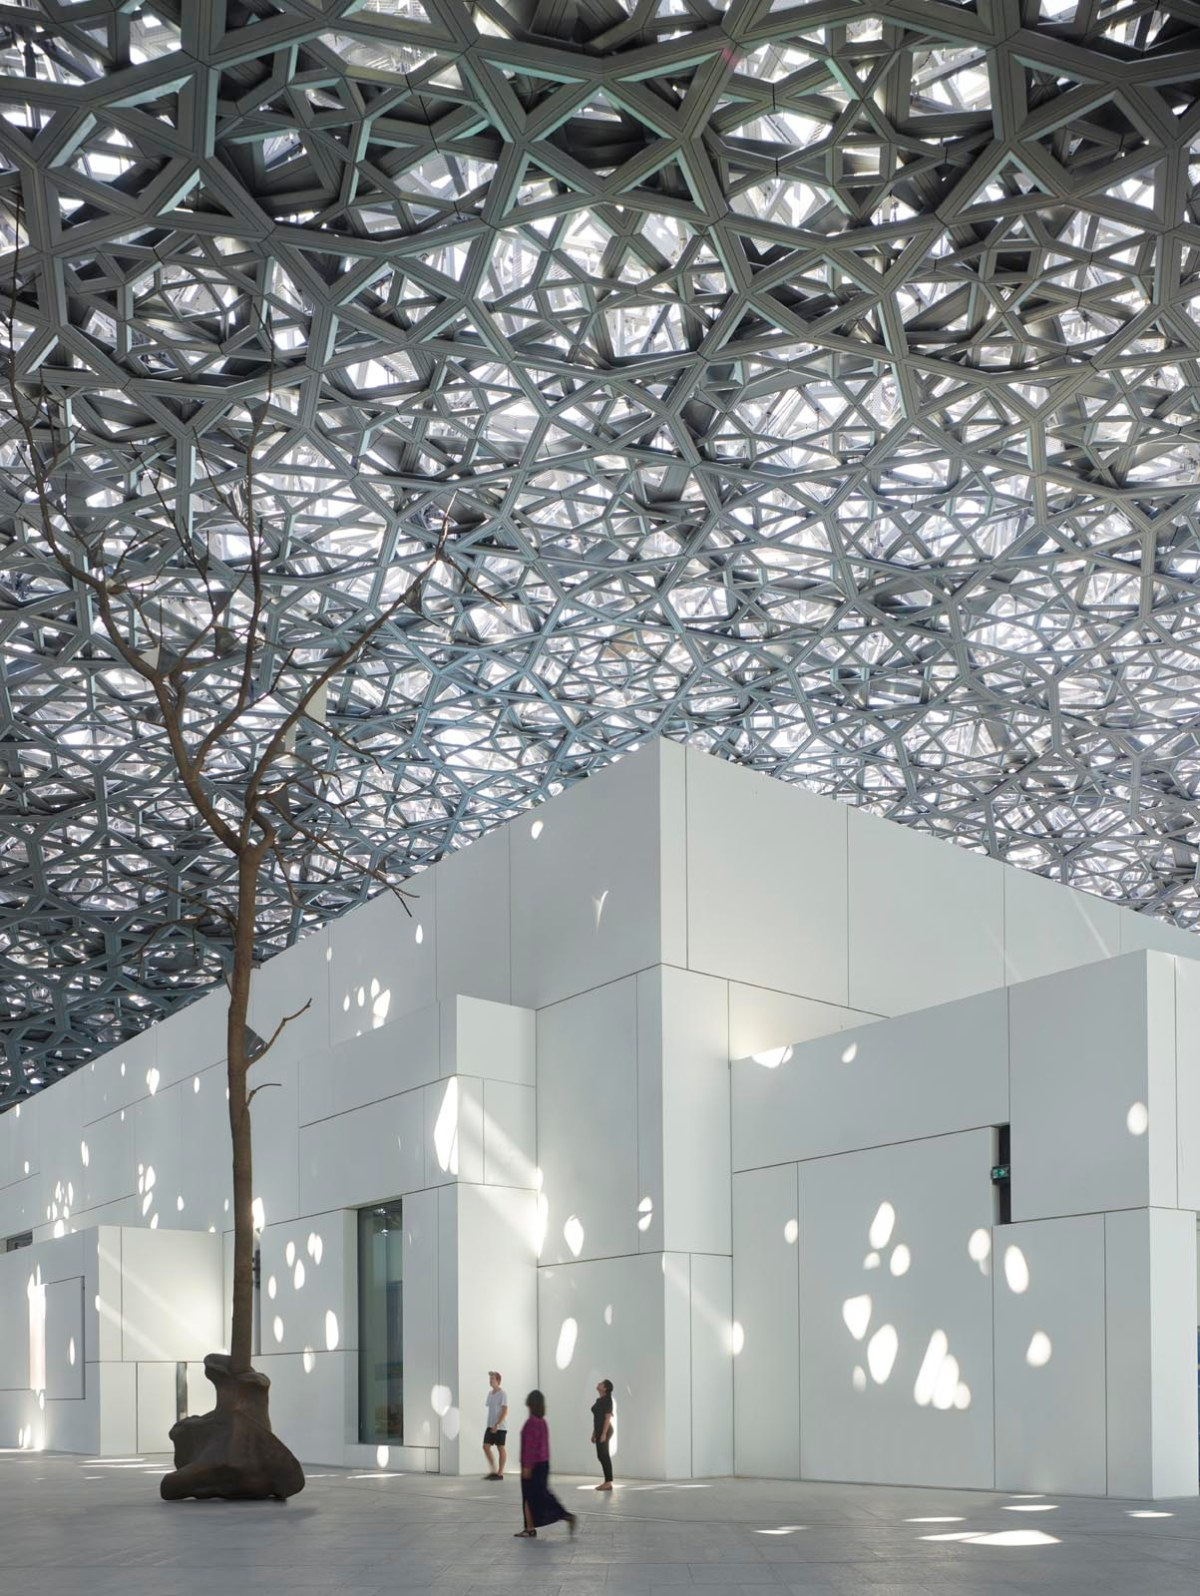 A New Light: Louvre Abu Dhabi Ushers a Global Focus on Shared Stories ofHumanity